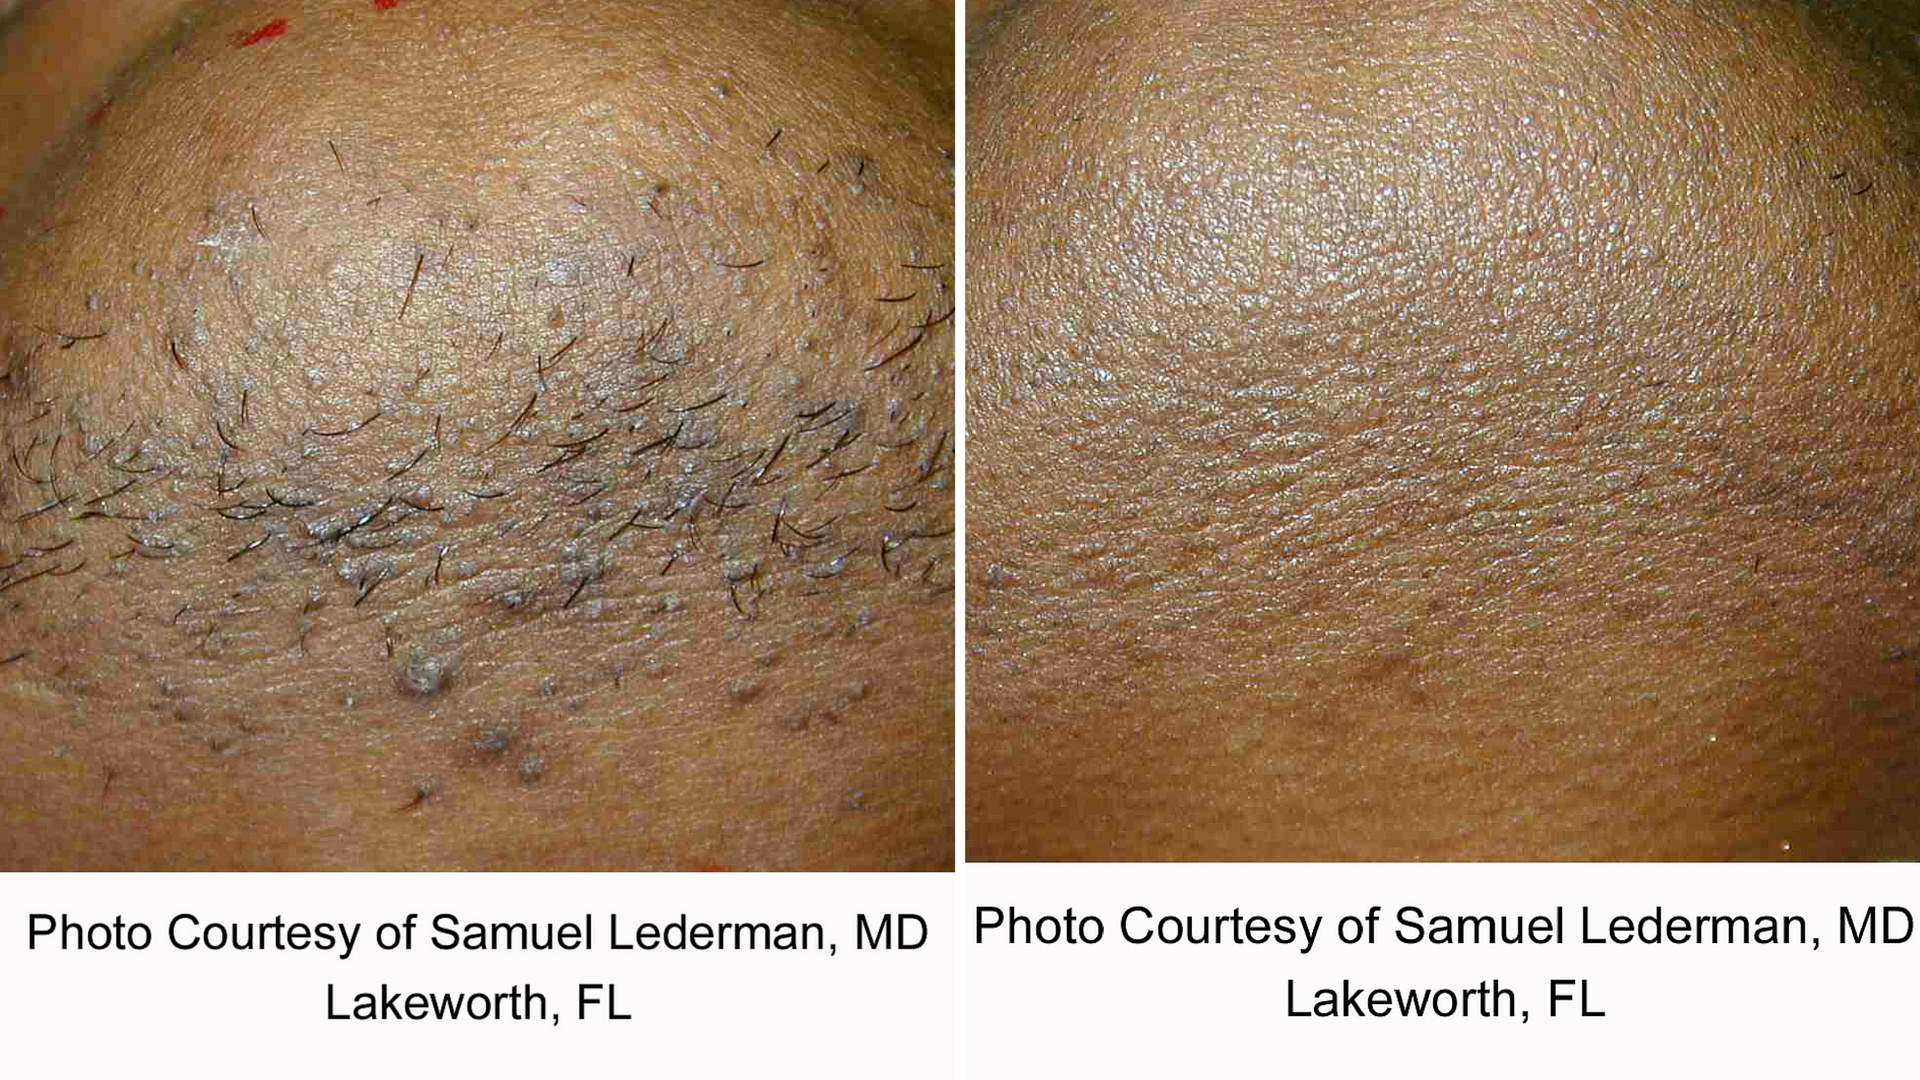 Coolglide Laser Hair Removal Lakes Dermatology